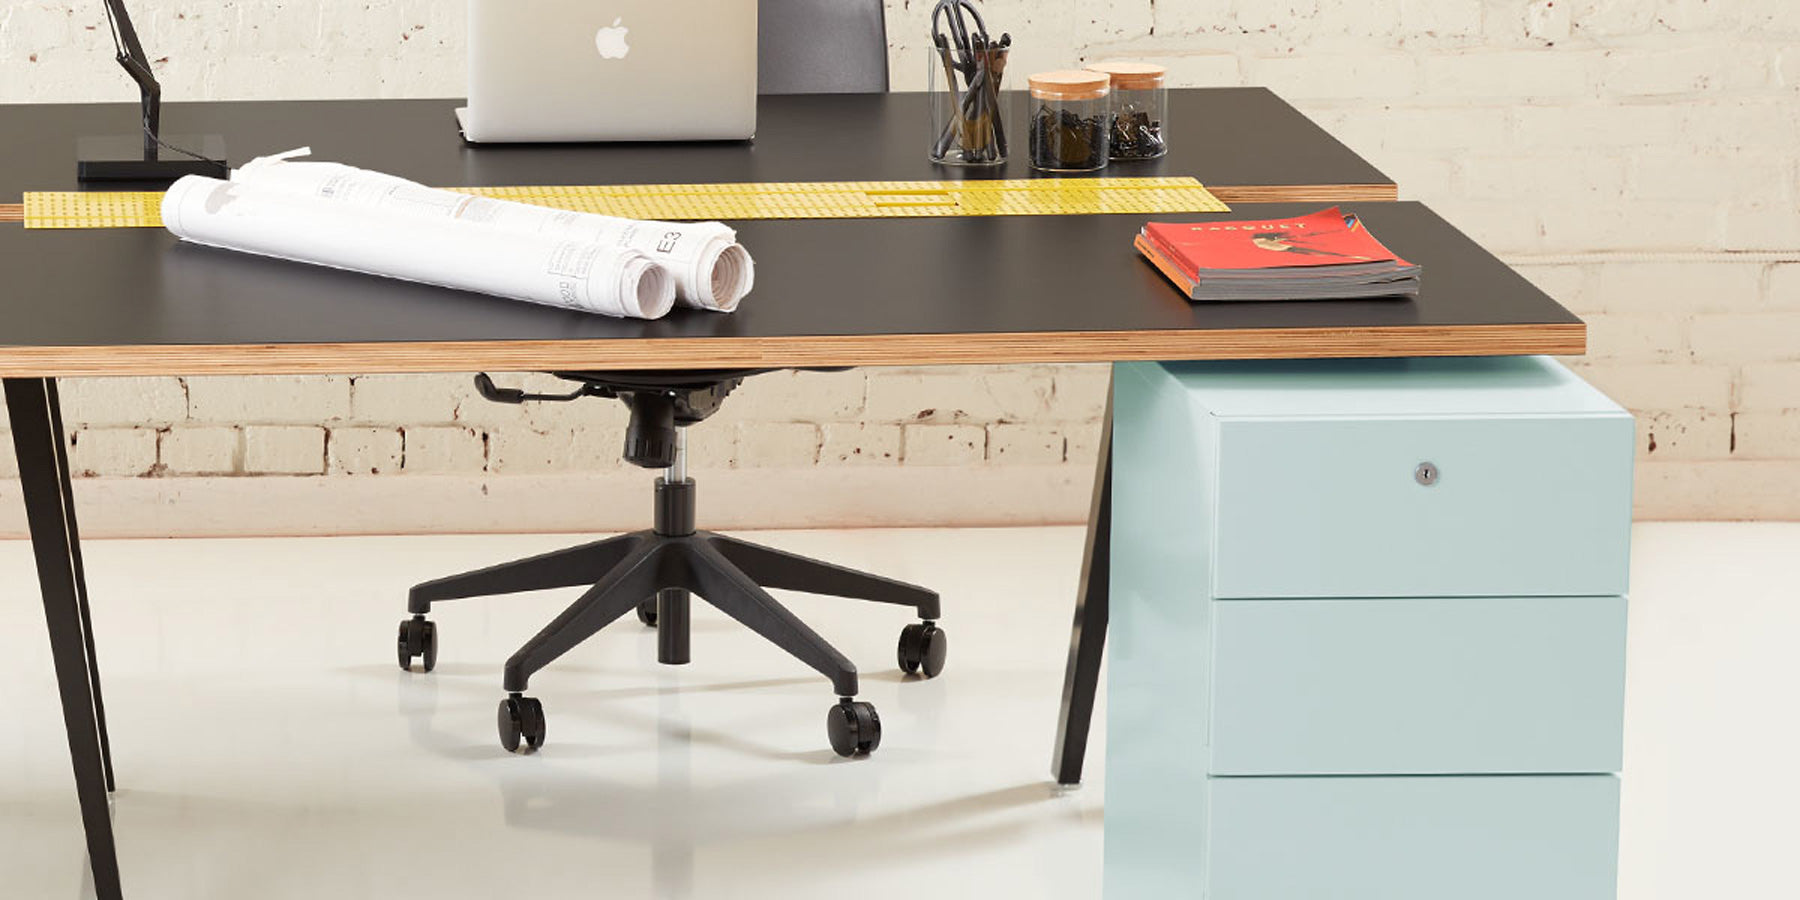 Heartwork Building Block pedestal in fresh mint under desk in office setting